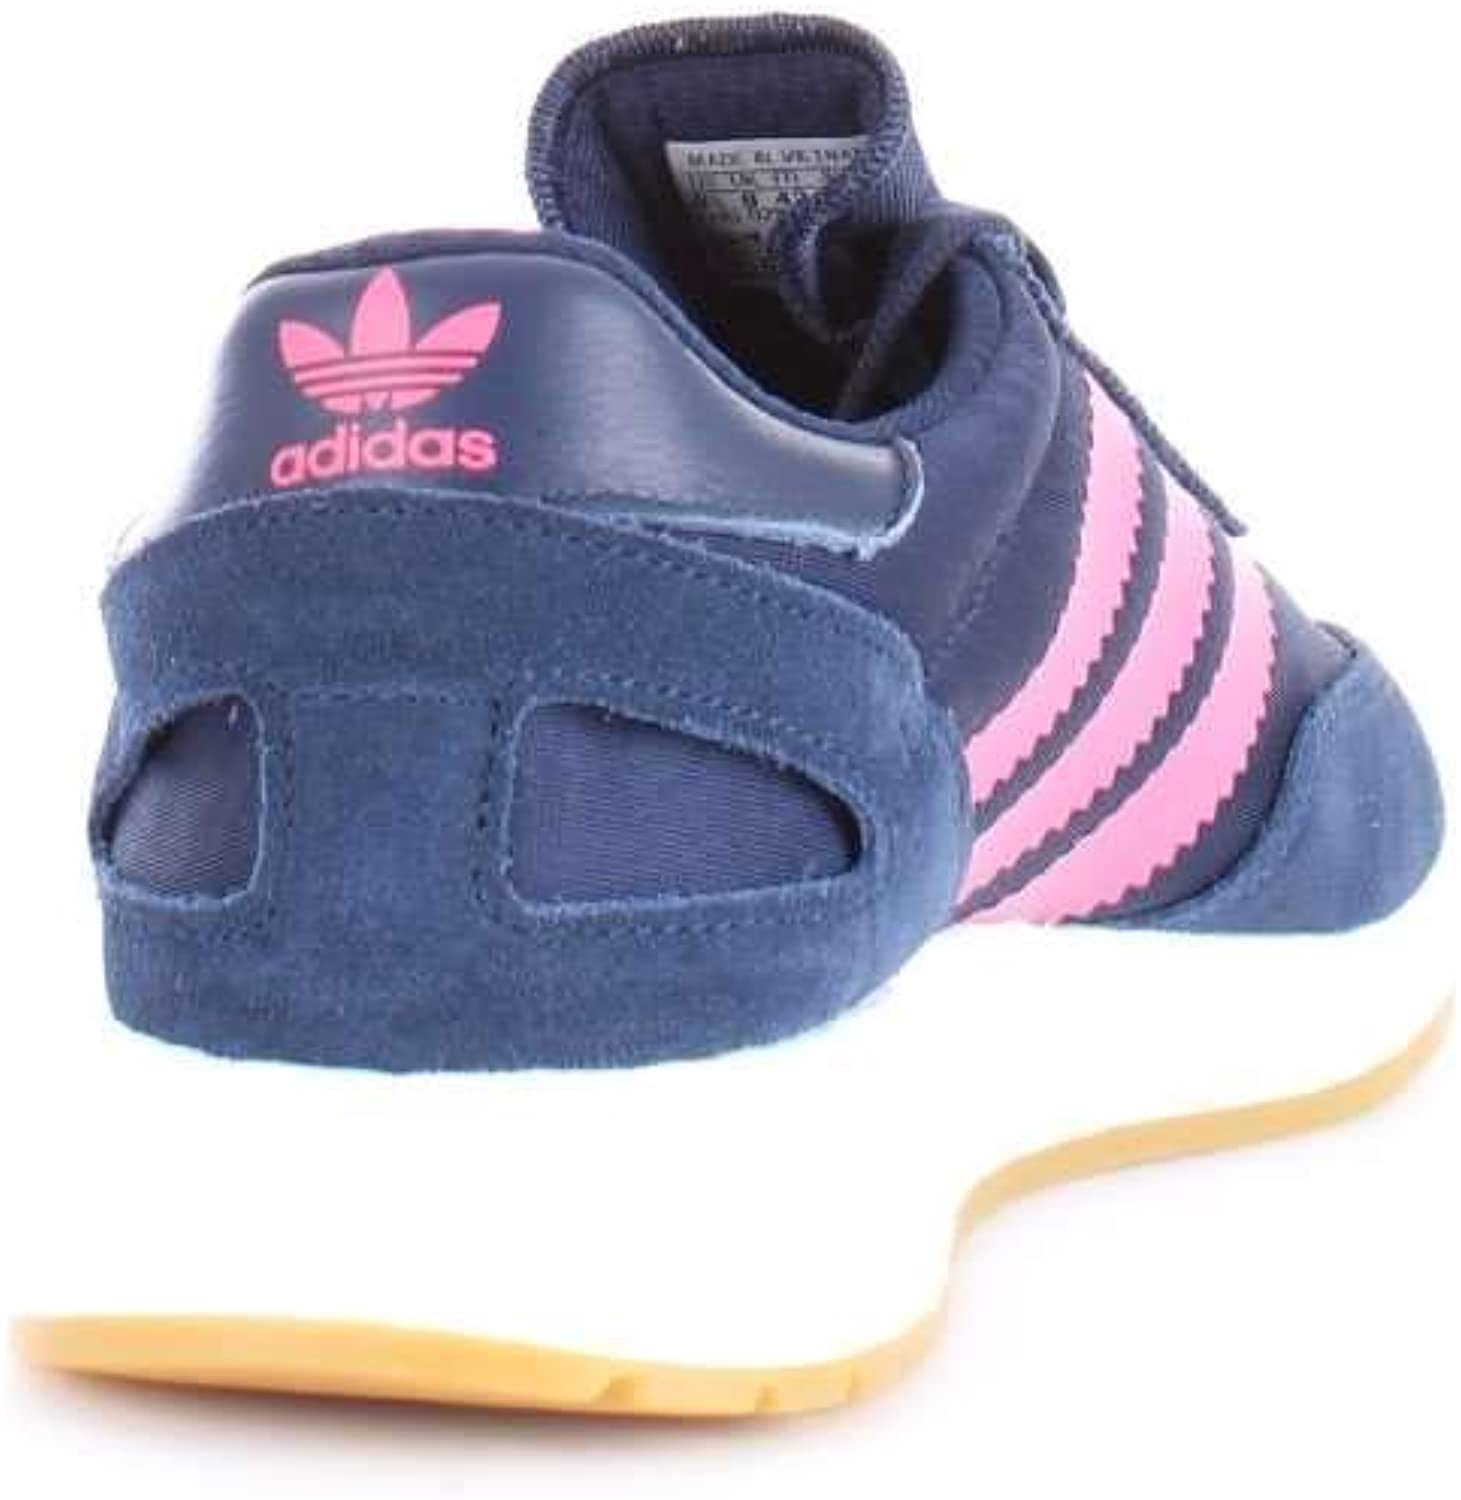 adidas I-5923 Chaussures de Fitness Homme